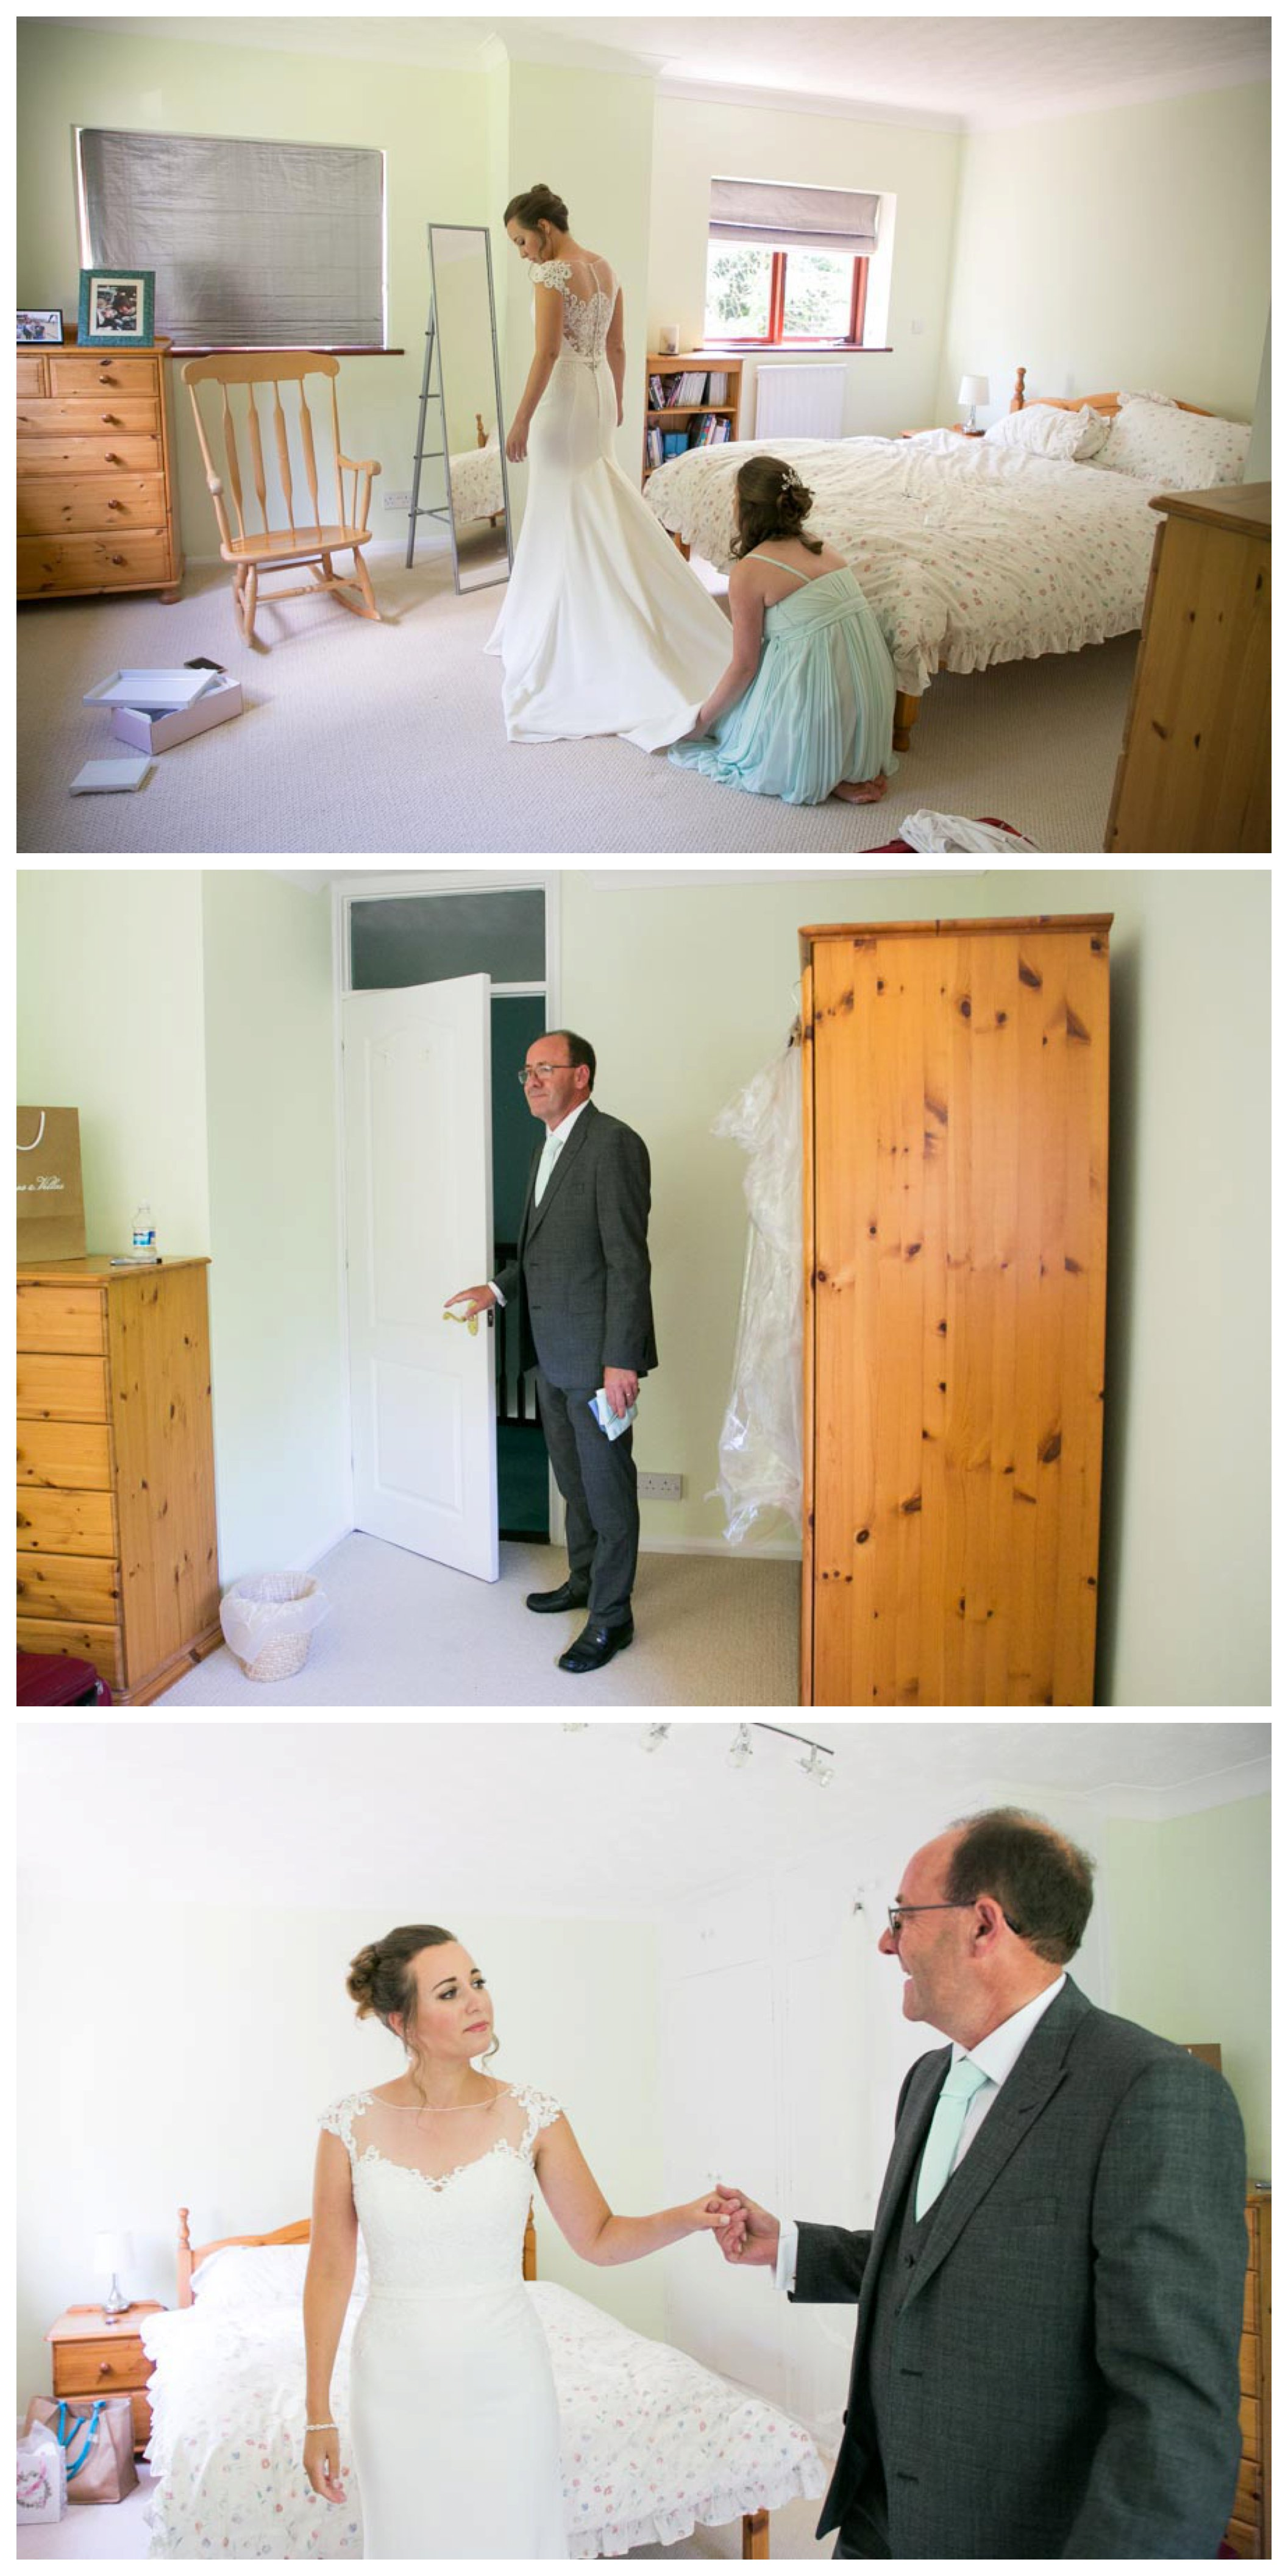 bride in wedding dress in childhood bedroom, emotional father coming in to see her